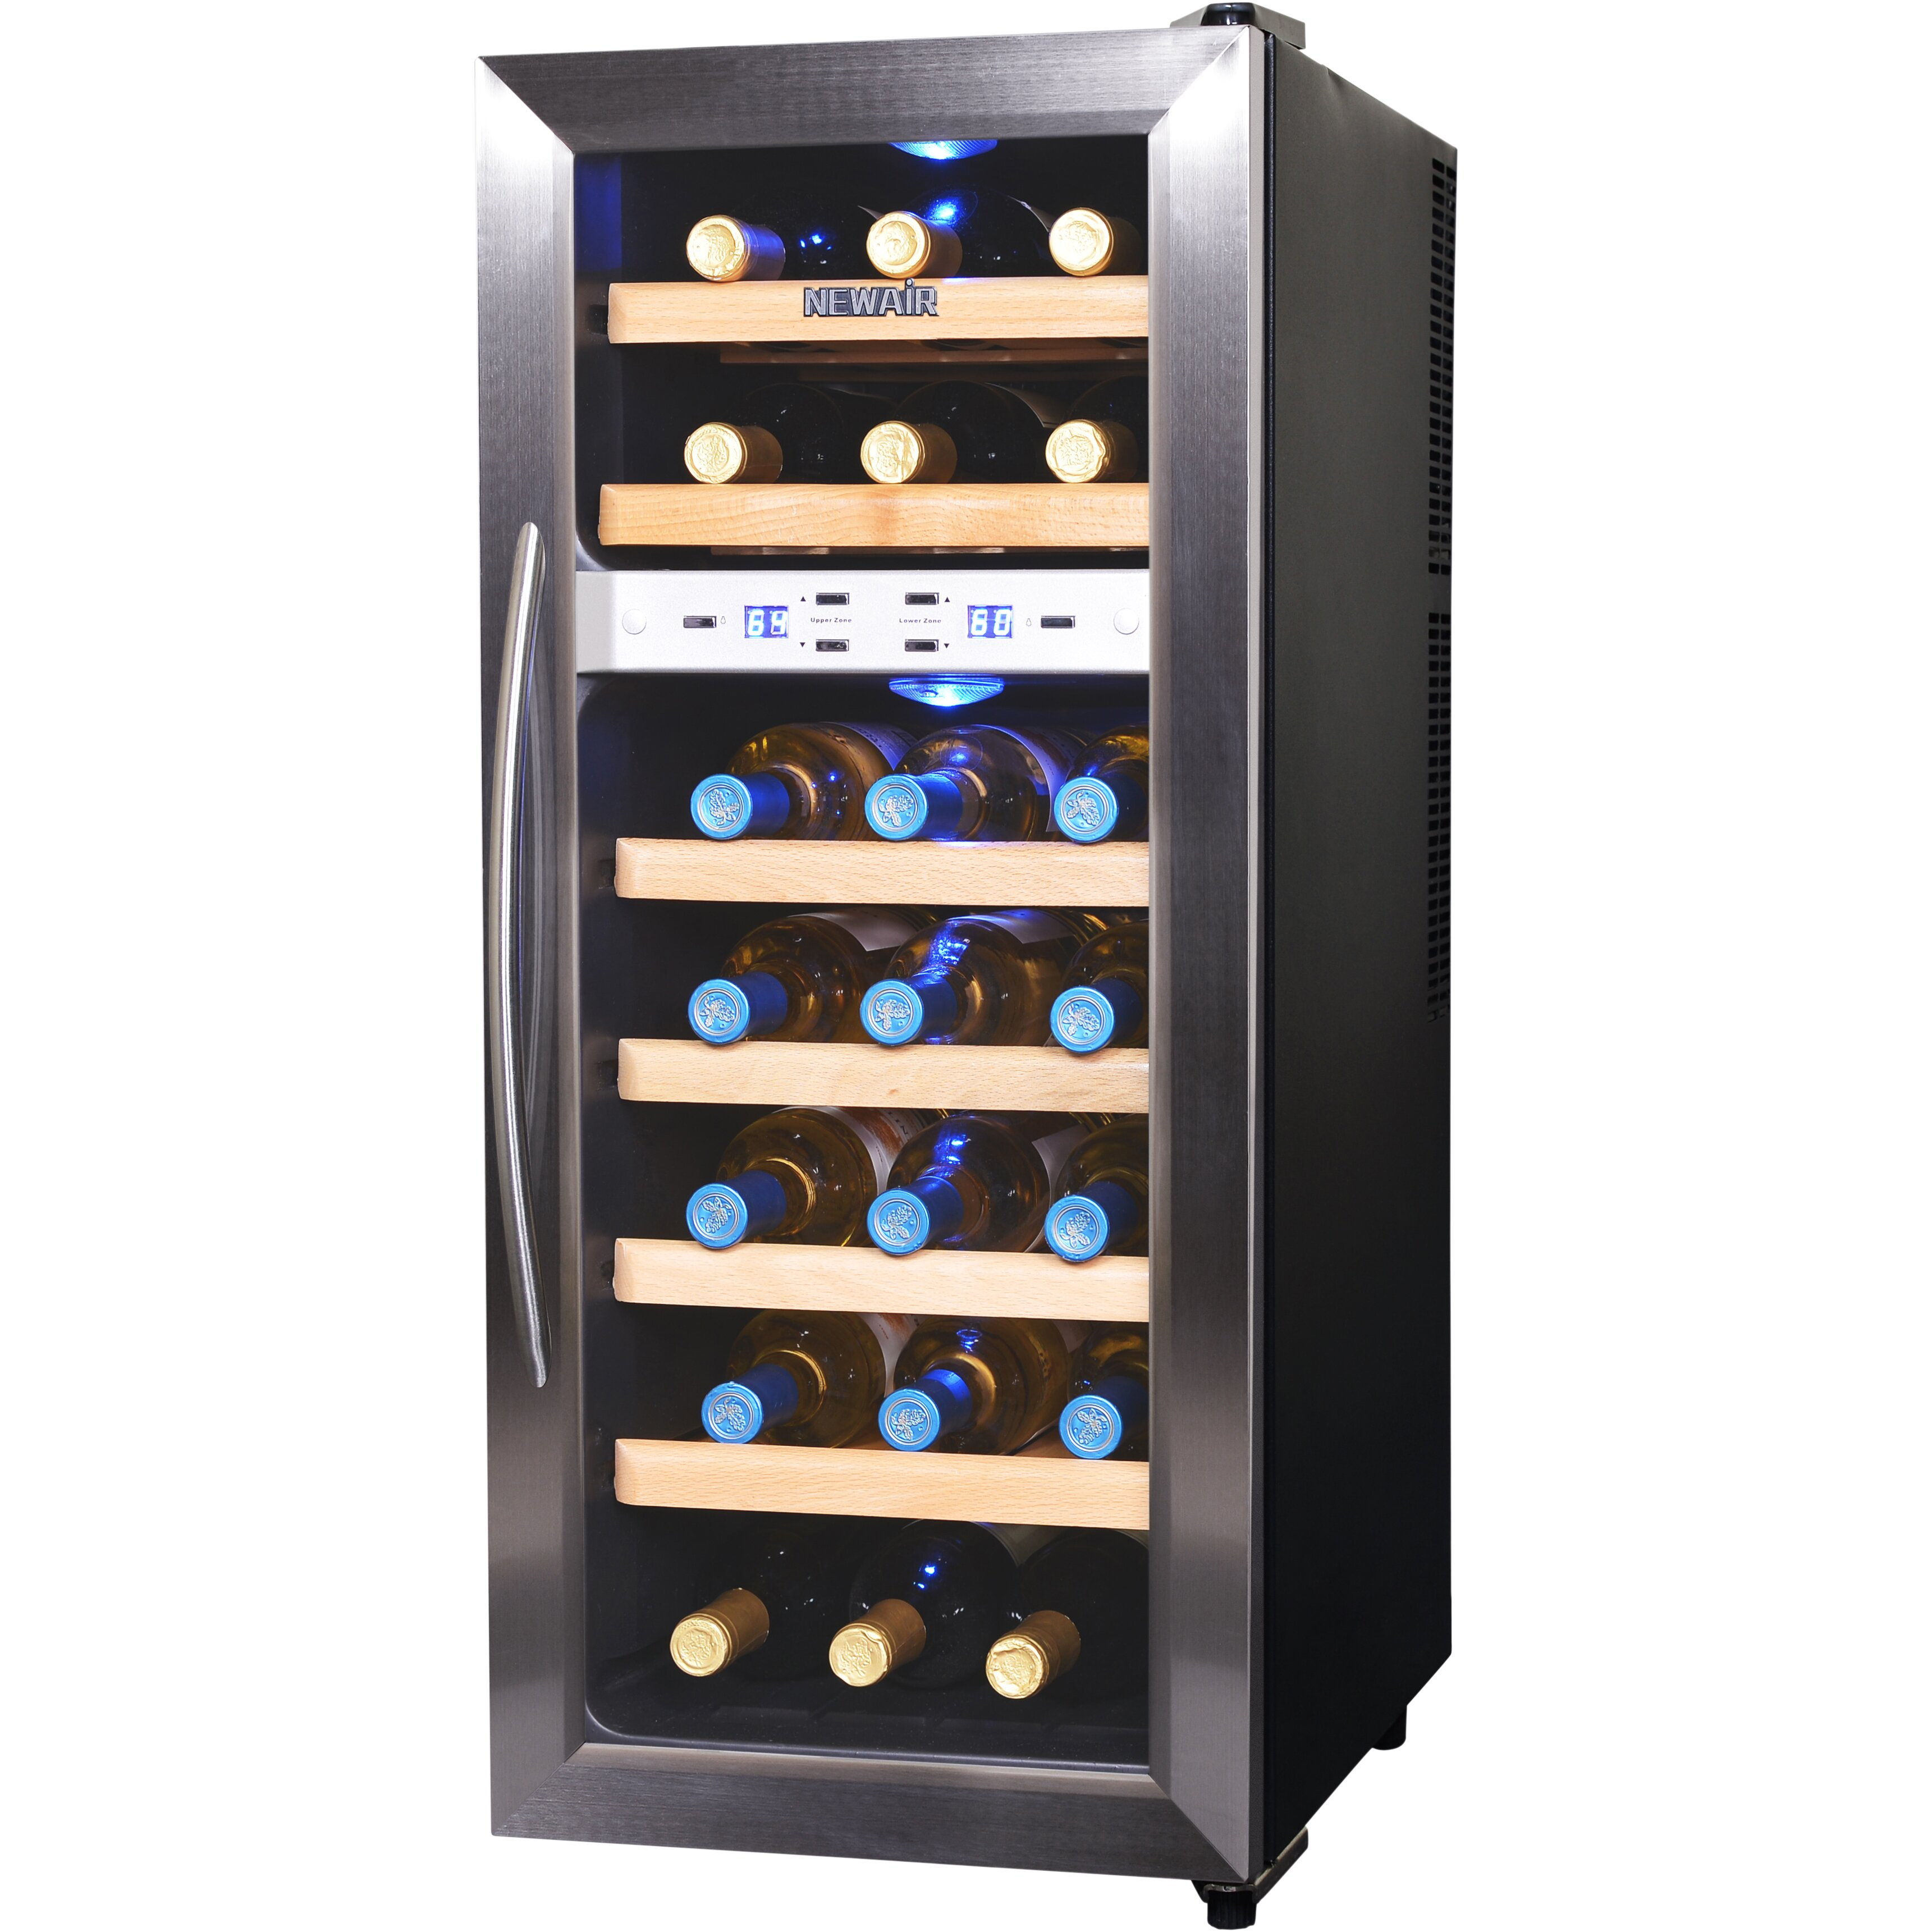 Cabinet With Wine Cooler Newair 21 Bottle Dual Zone Freestanding Wine Refrigerator